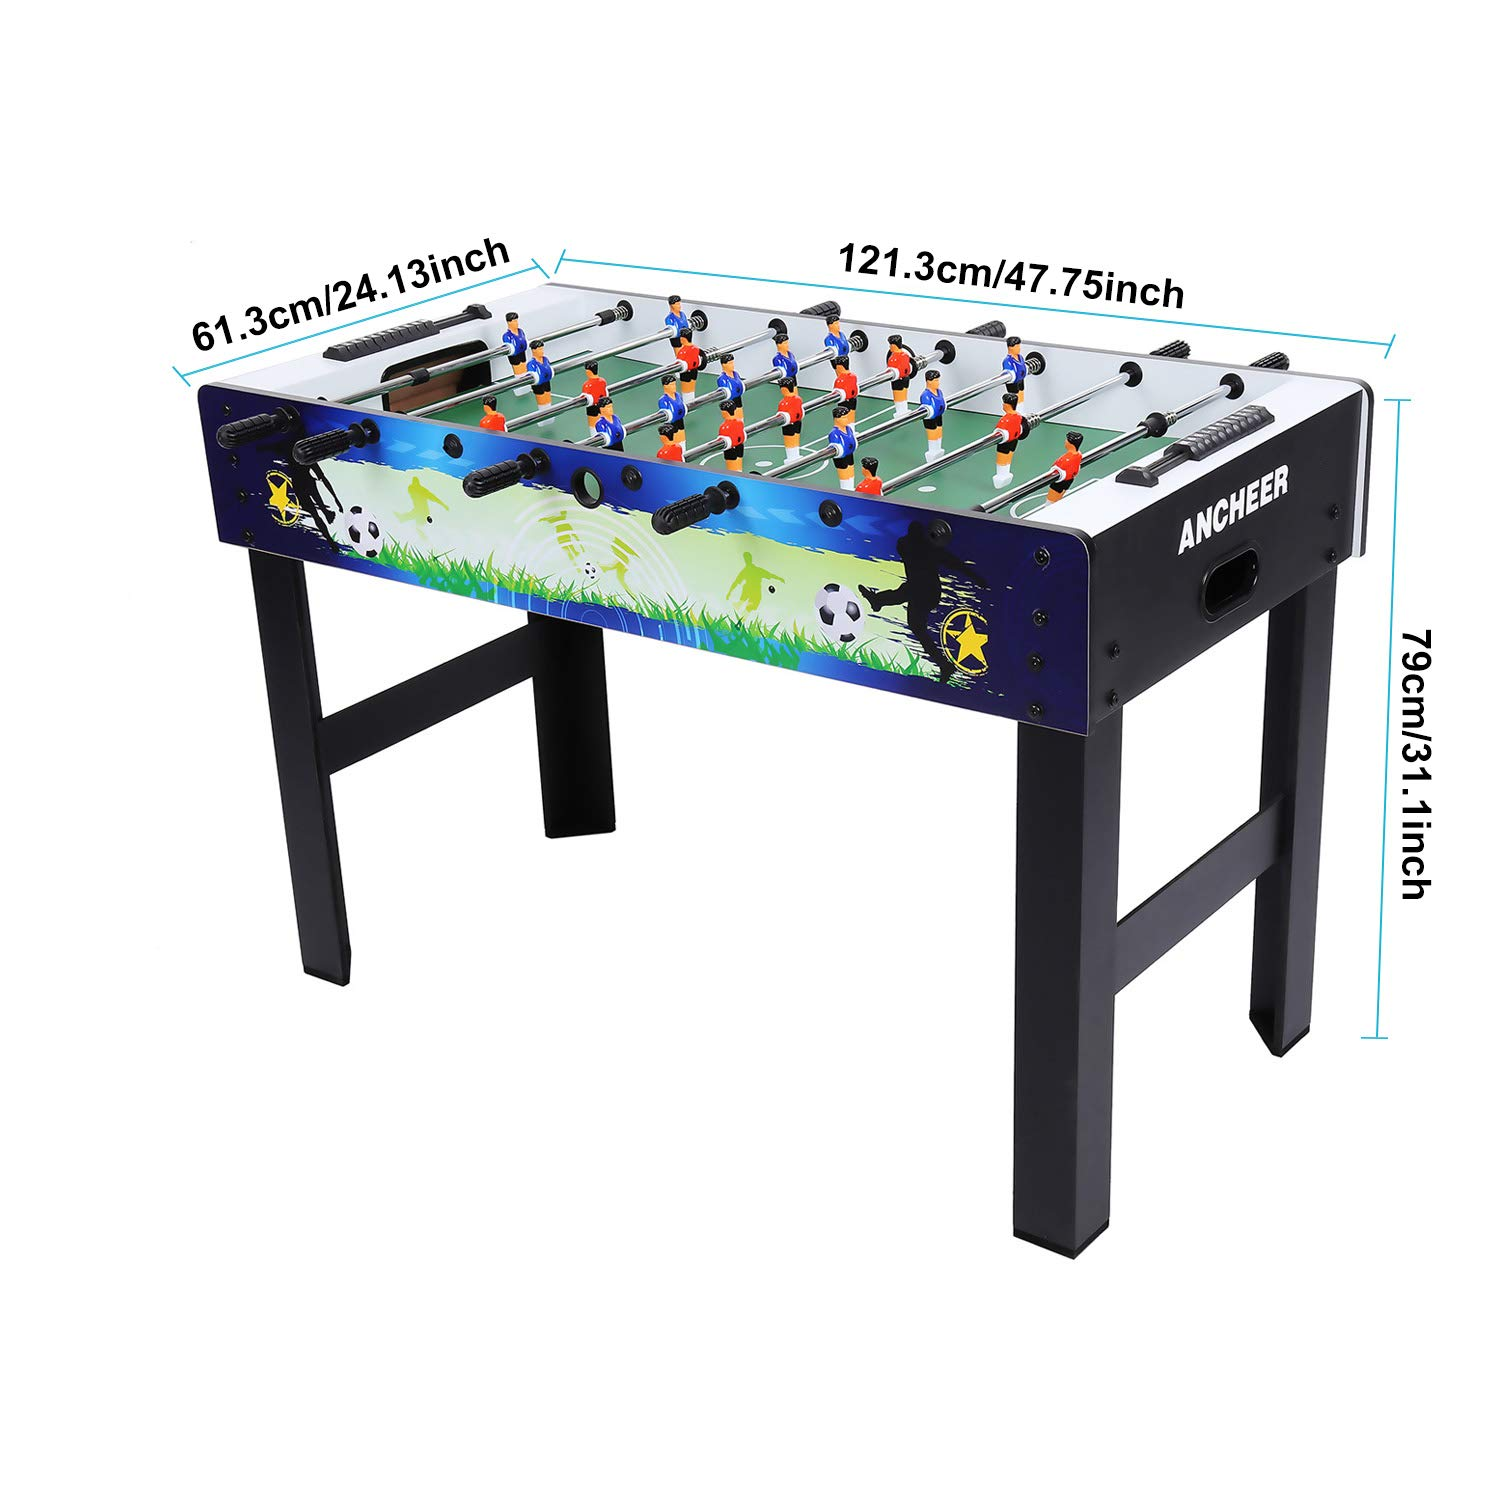 ANCHEER 48'' Foosball Table Soccer Table Arcade Game Room Football Table Sports Game for Kids& Adults- Indoor&Outdoor by ANCHEER (Image #2)